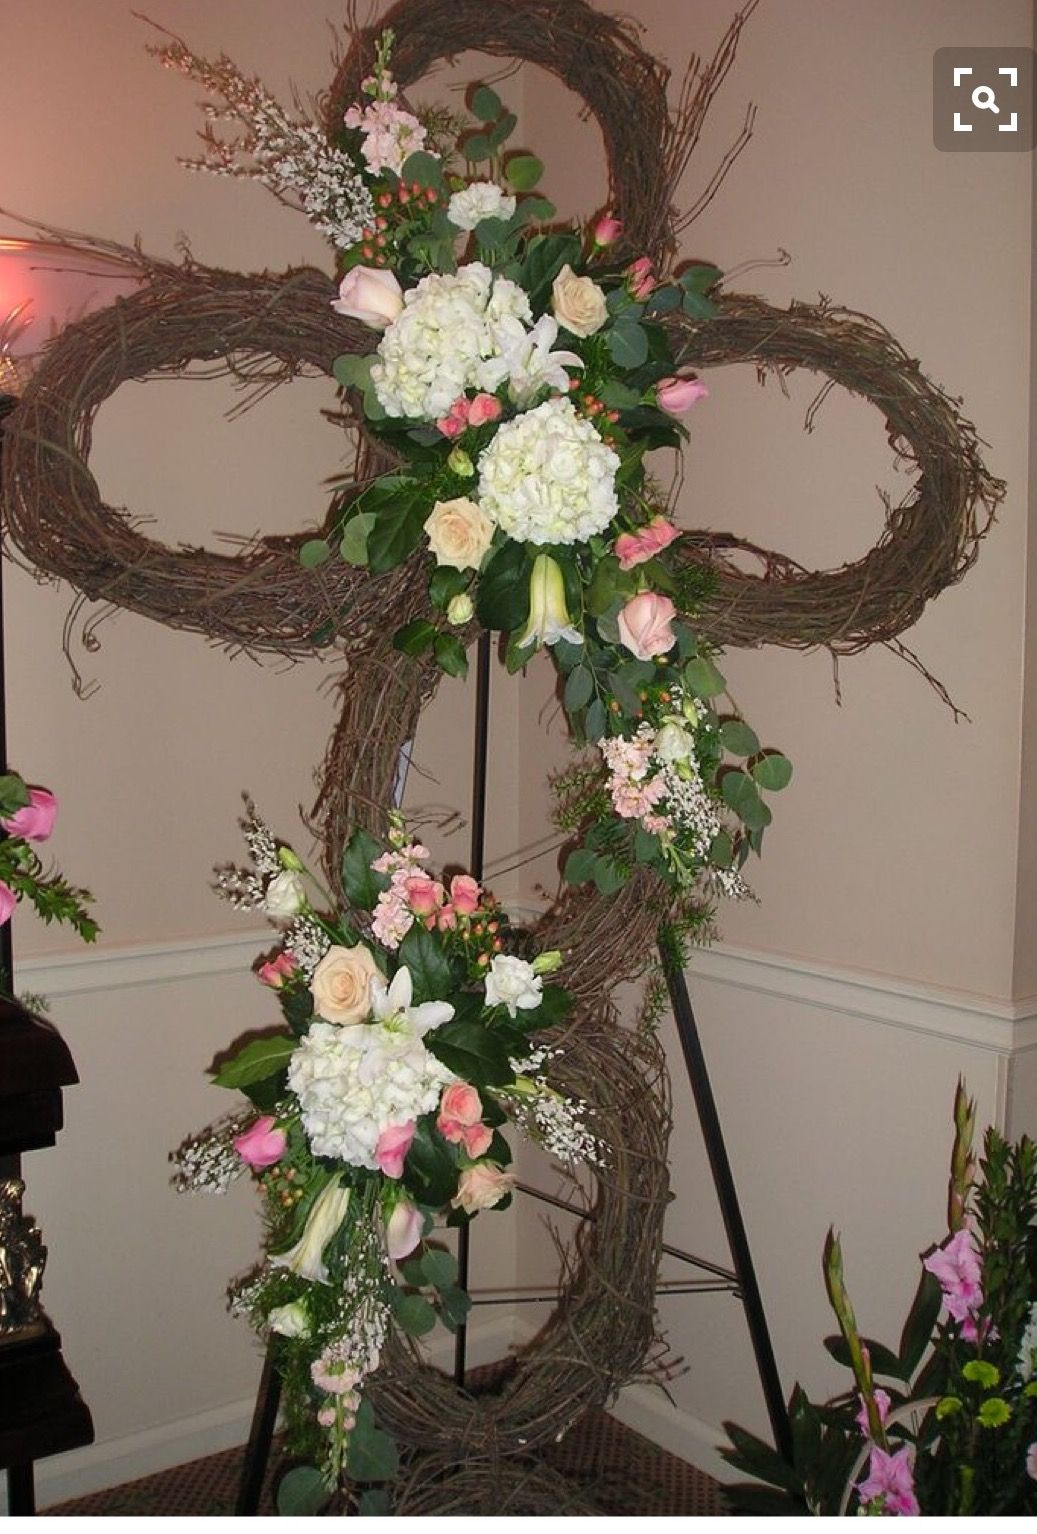 Pin by Mary Garner on Sympathy Arrangements Funeral